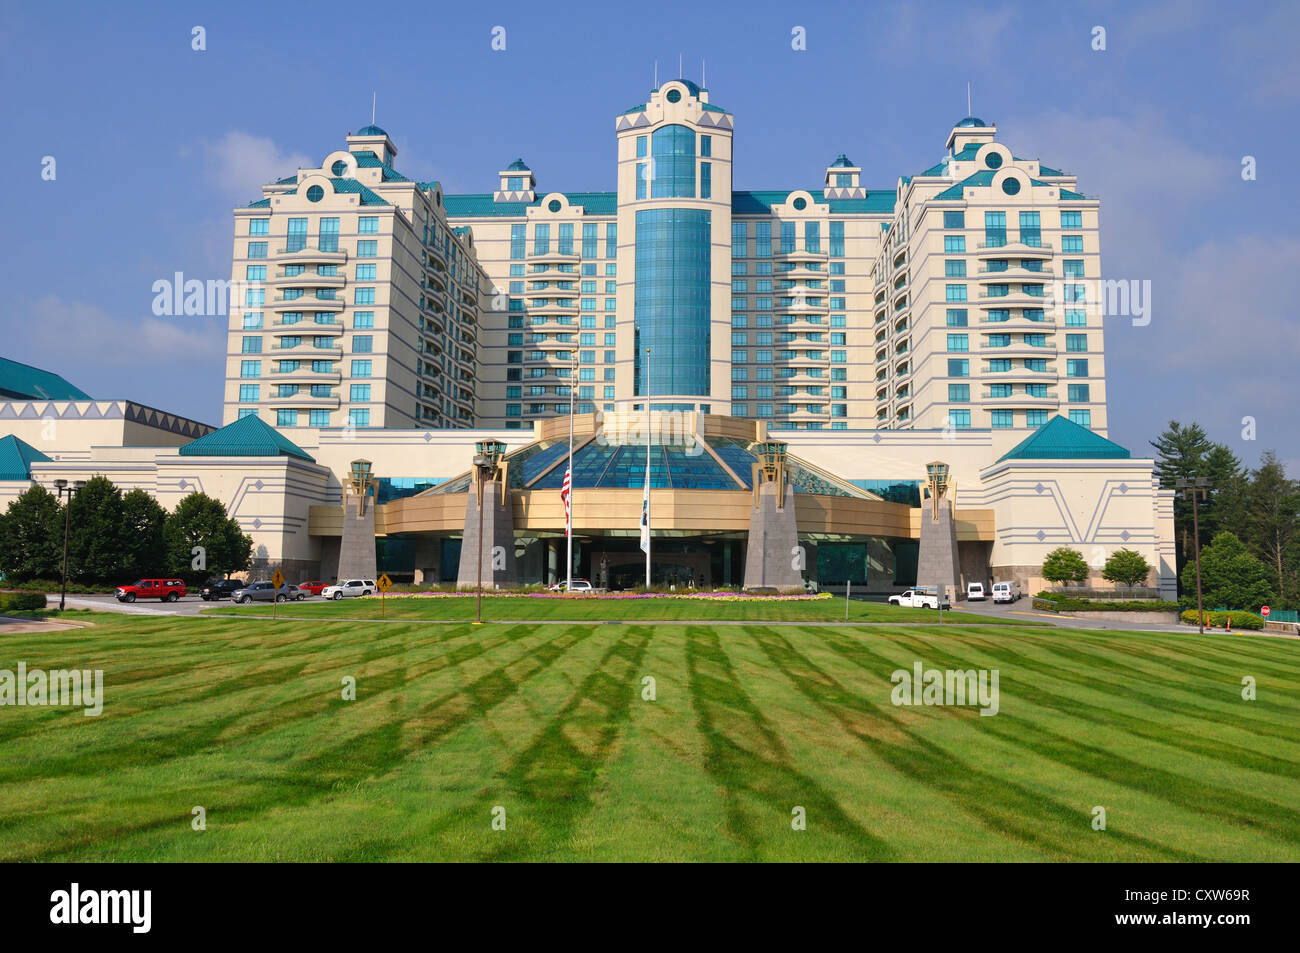 Foxwood resorts casino imperialpalacecasino in mississippi